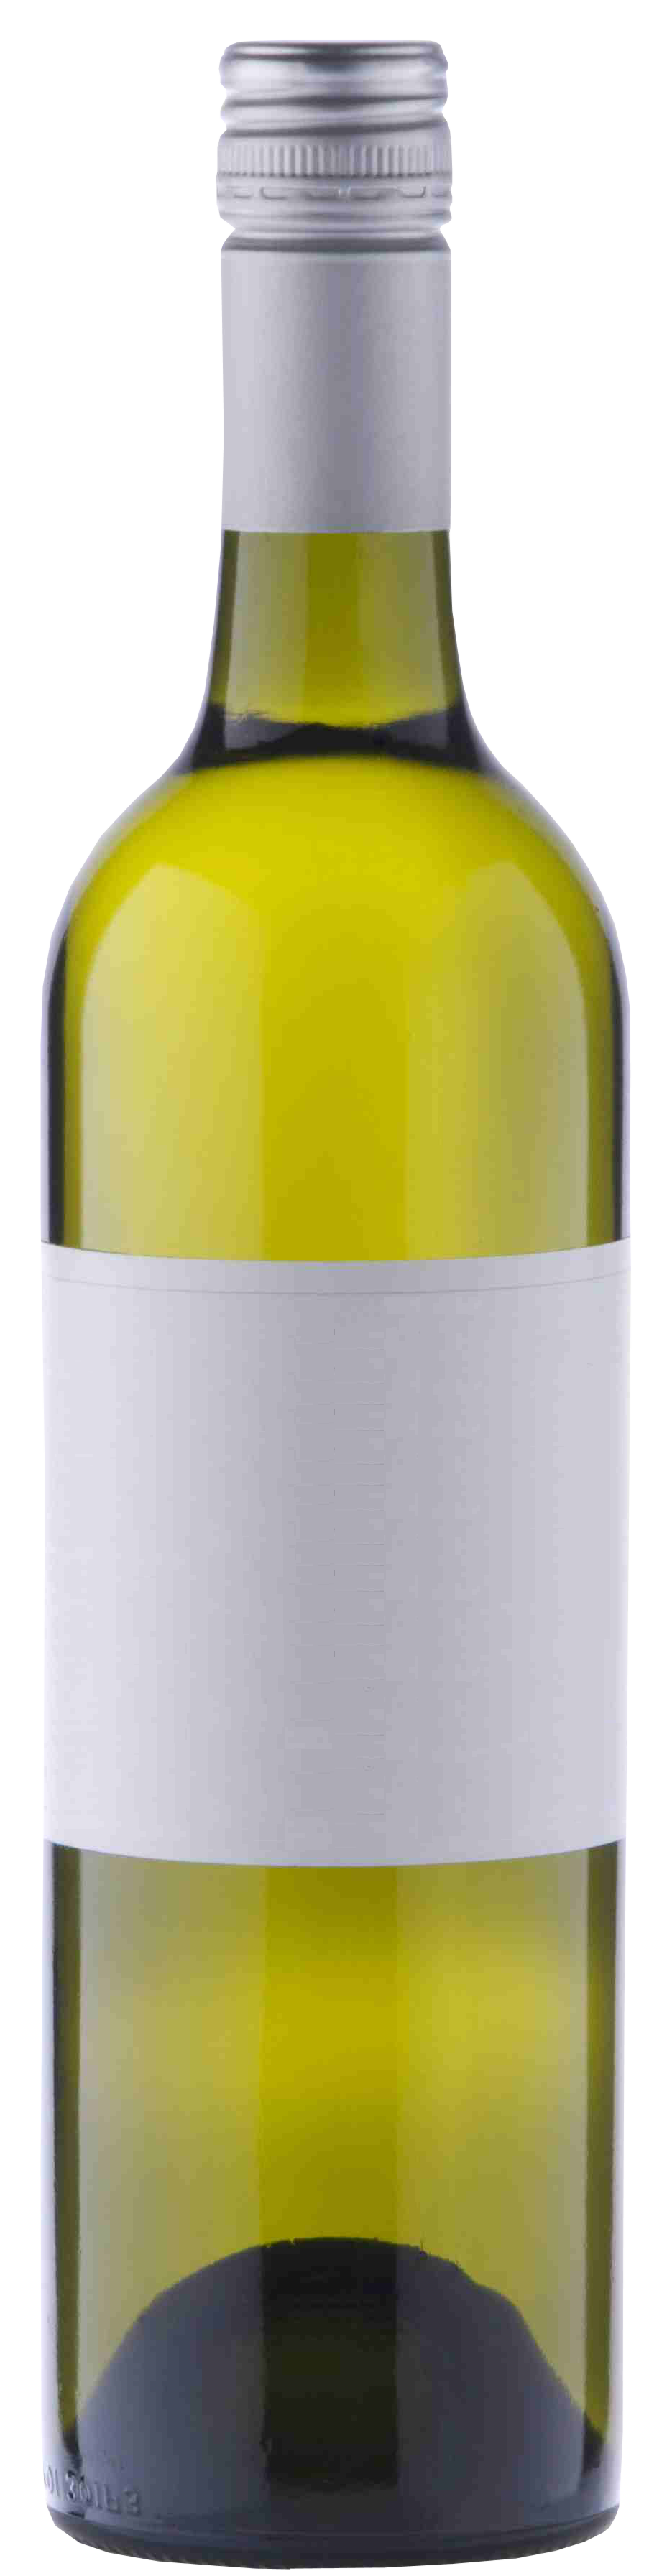 Wine bottle PNG image